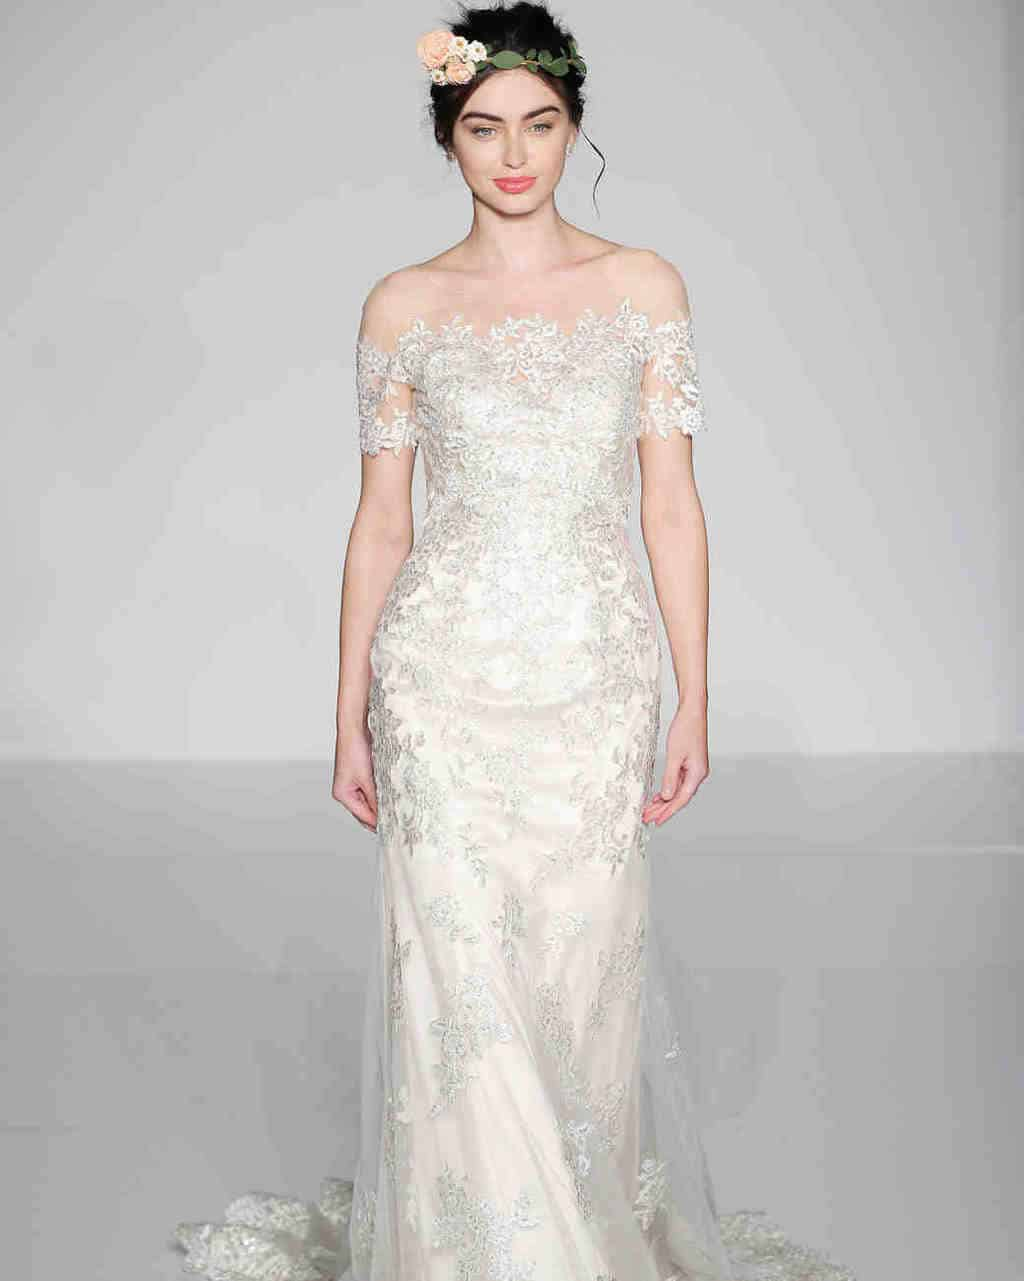 maggie-sottero-wedding-dress-fall2017-6203351-010_vert